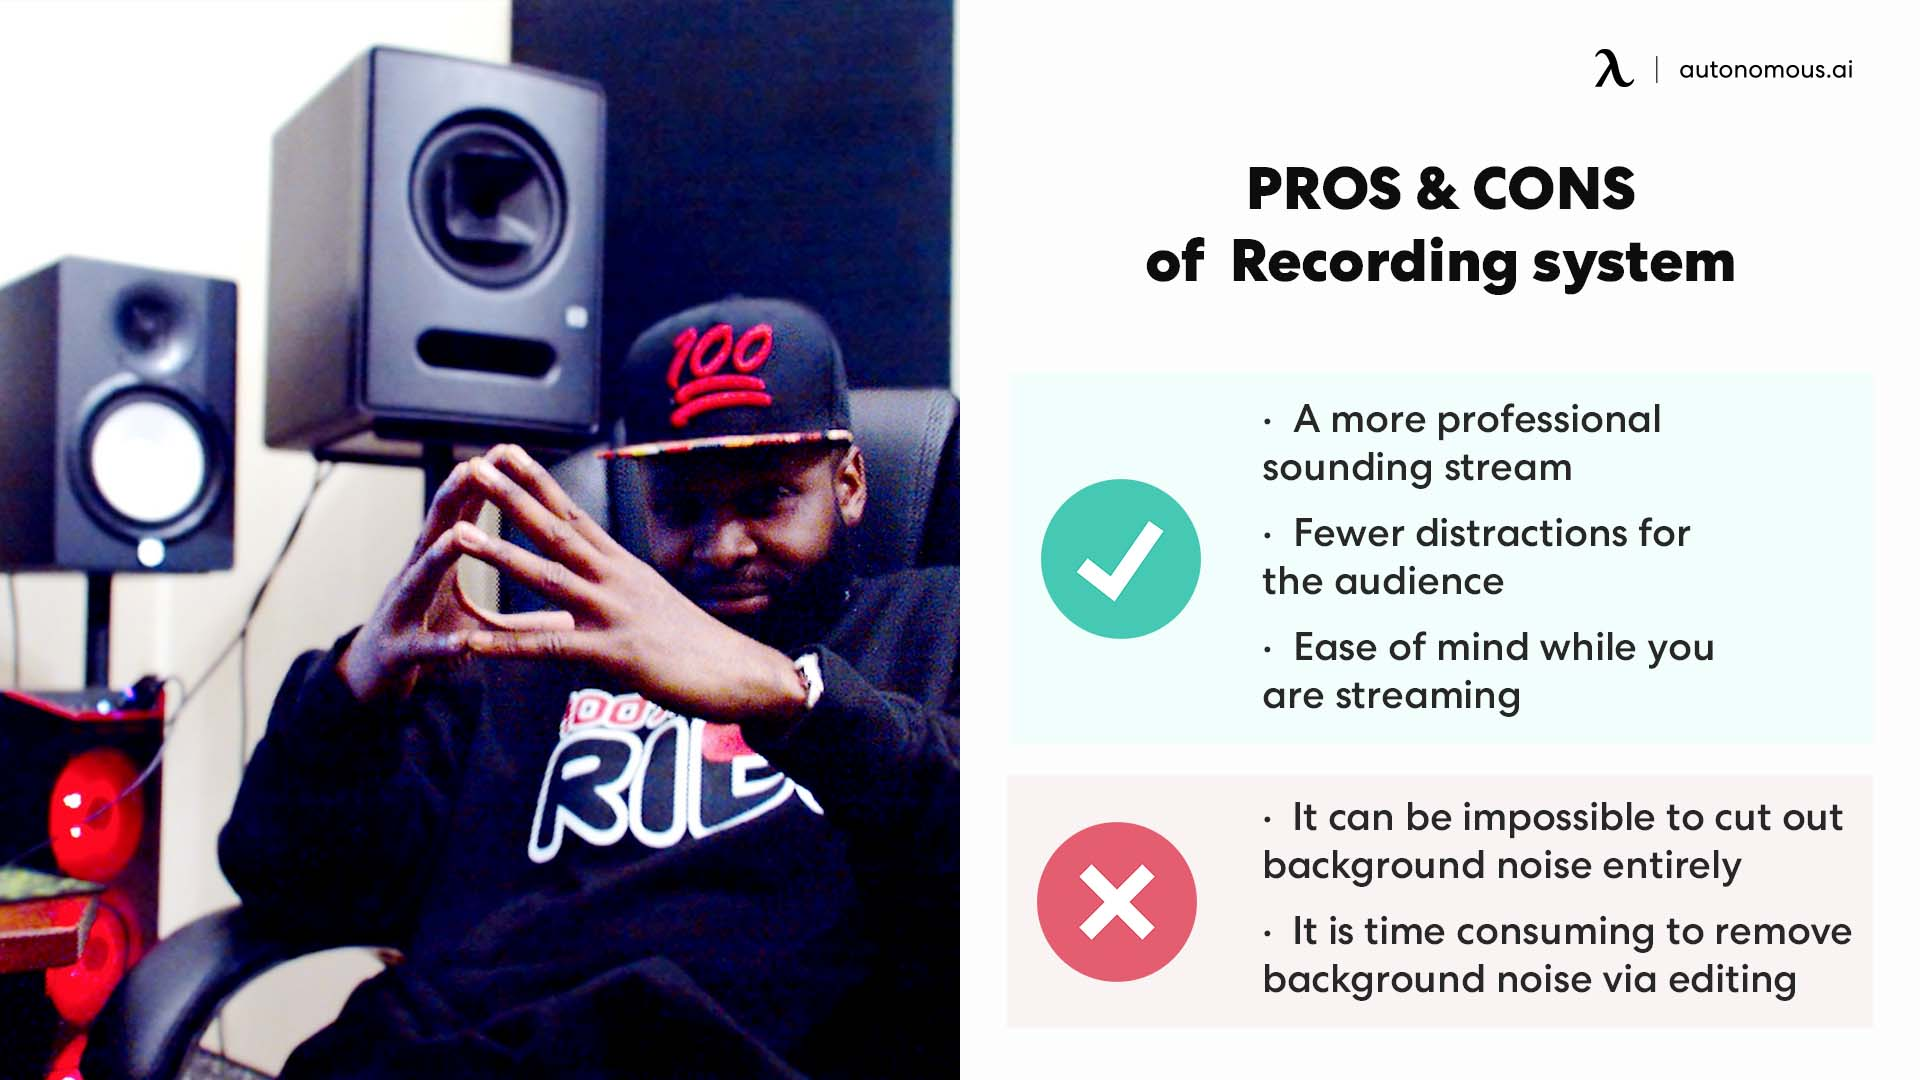 pros and cons of recording system